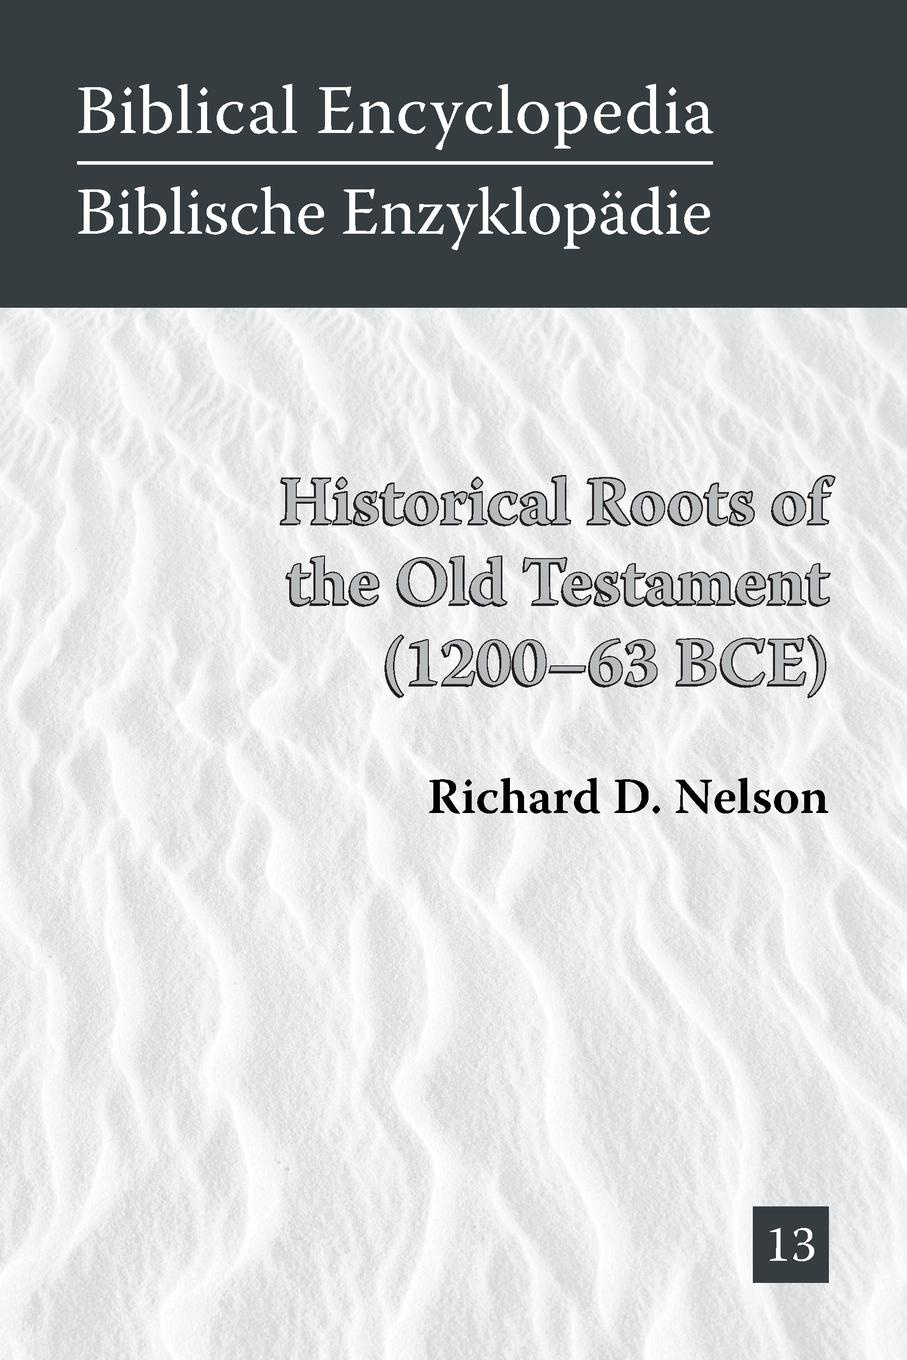 цена на Richard D. Nelson Historical Roots of the Old Testament (1200-63 BCE)